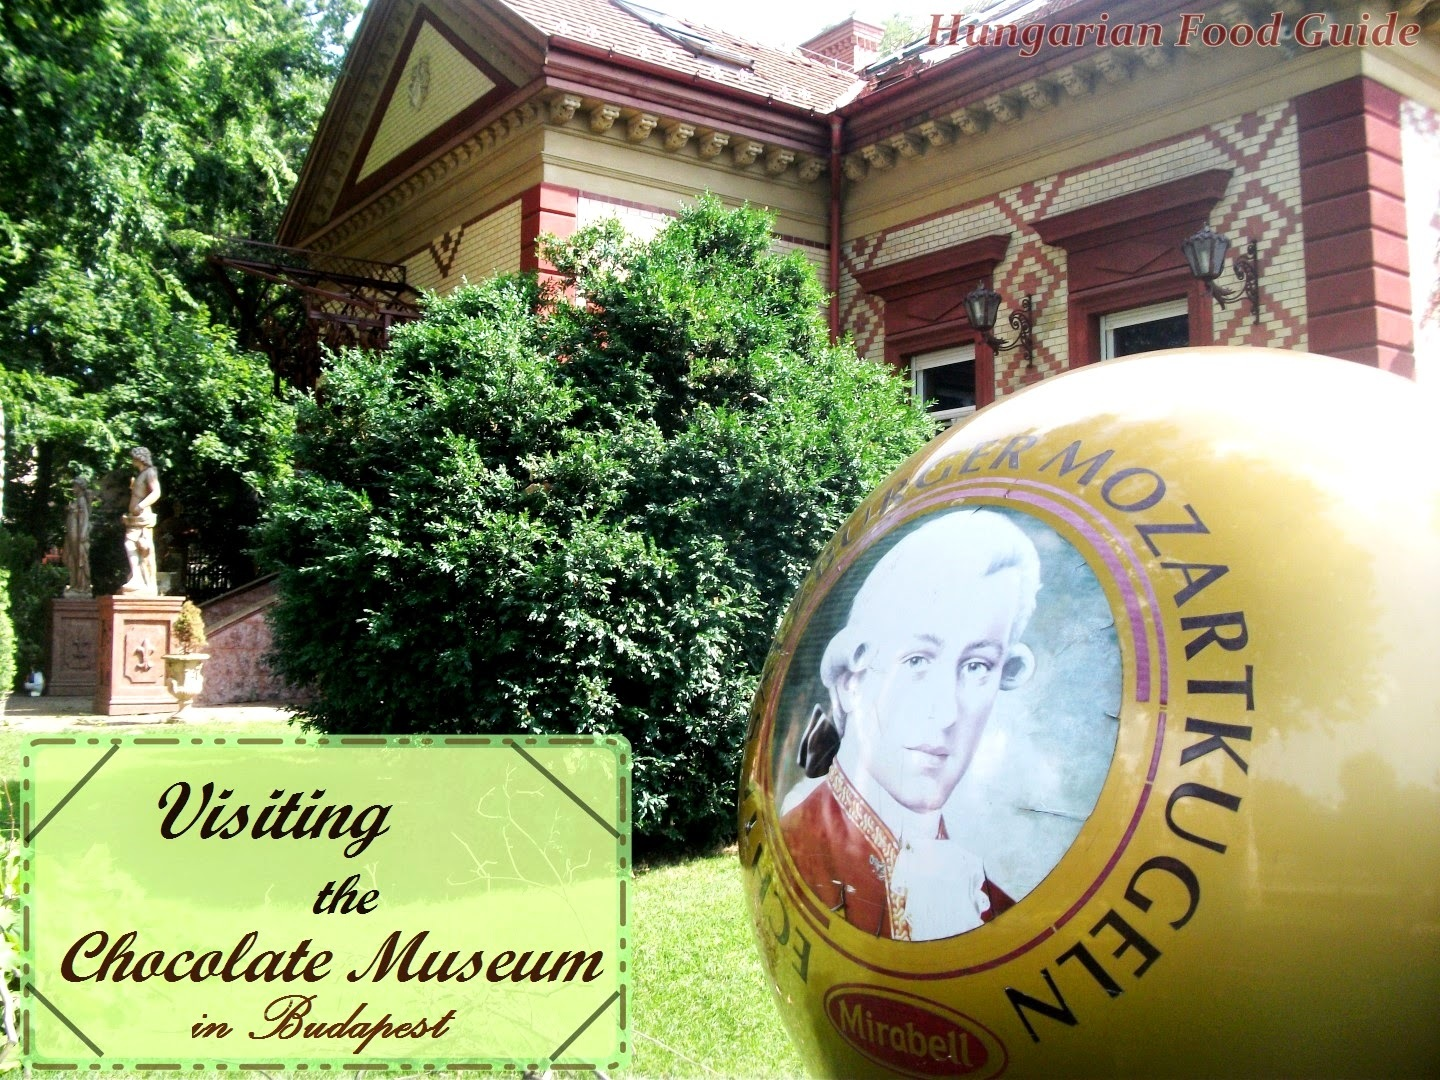 Visiting the Chocolate Museum